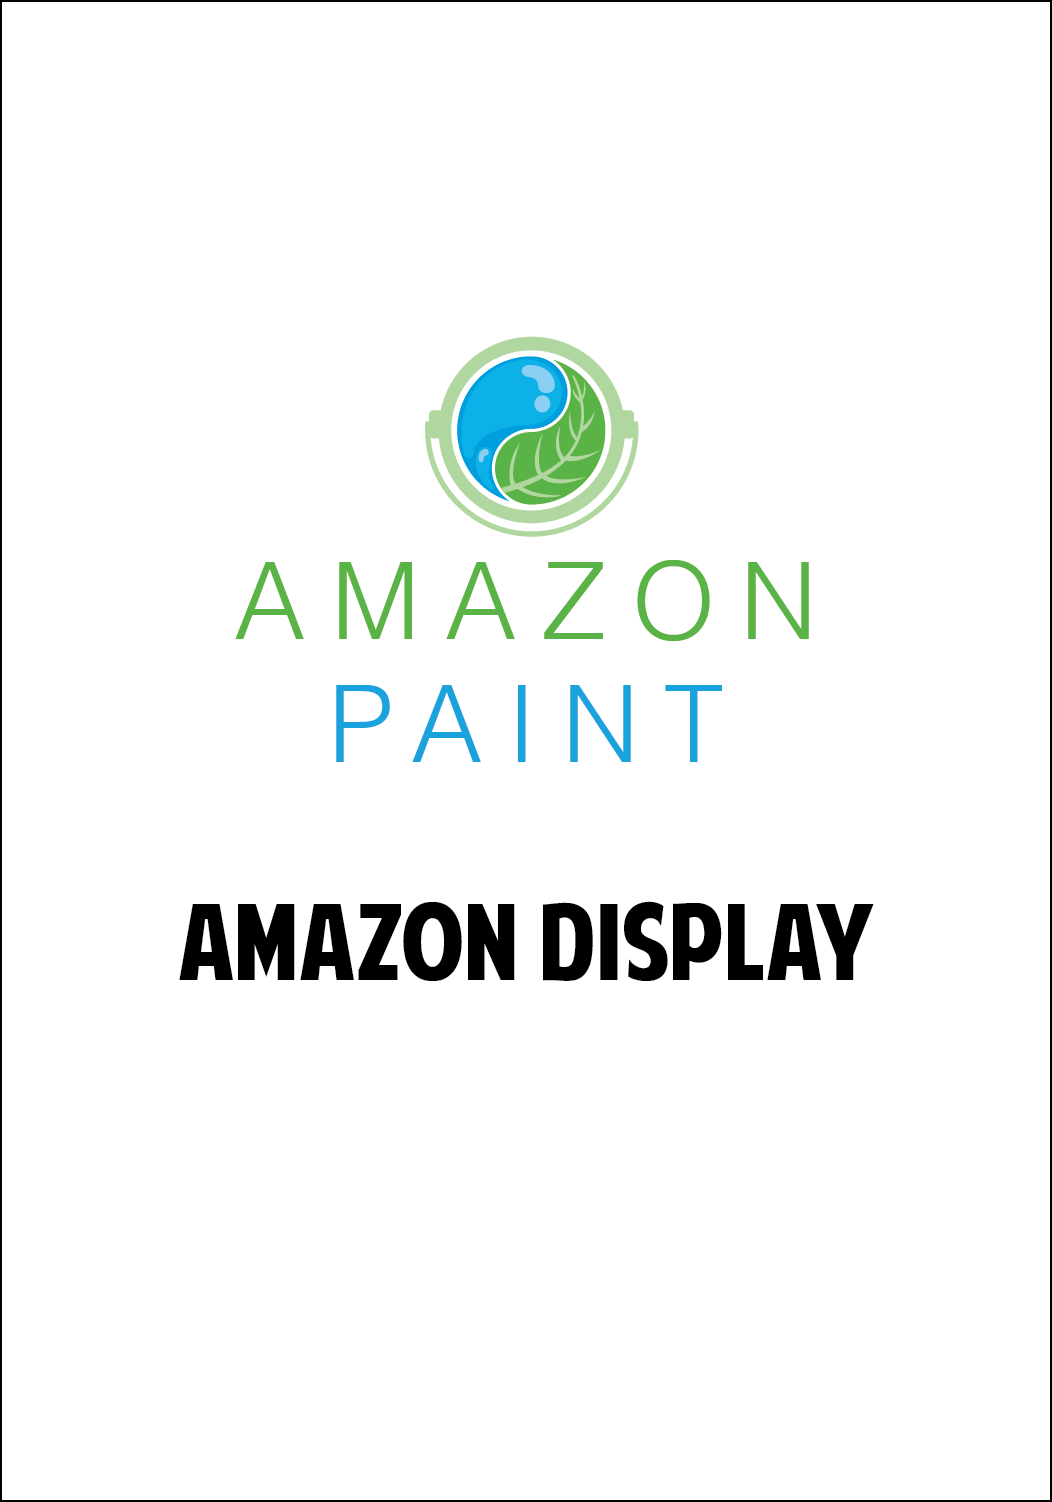 Amazon Display